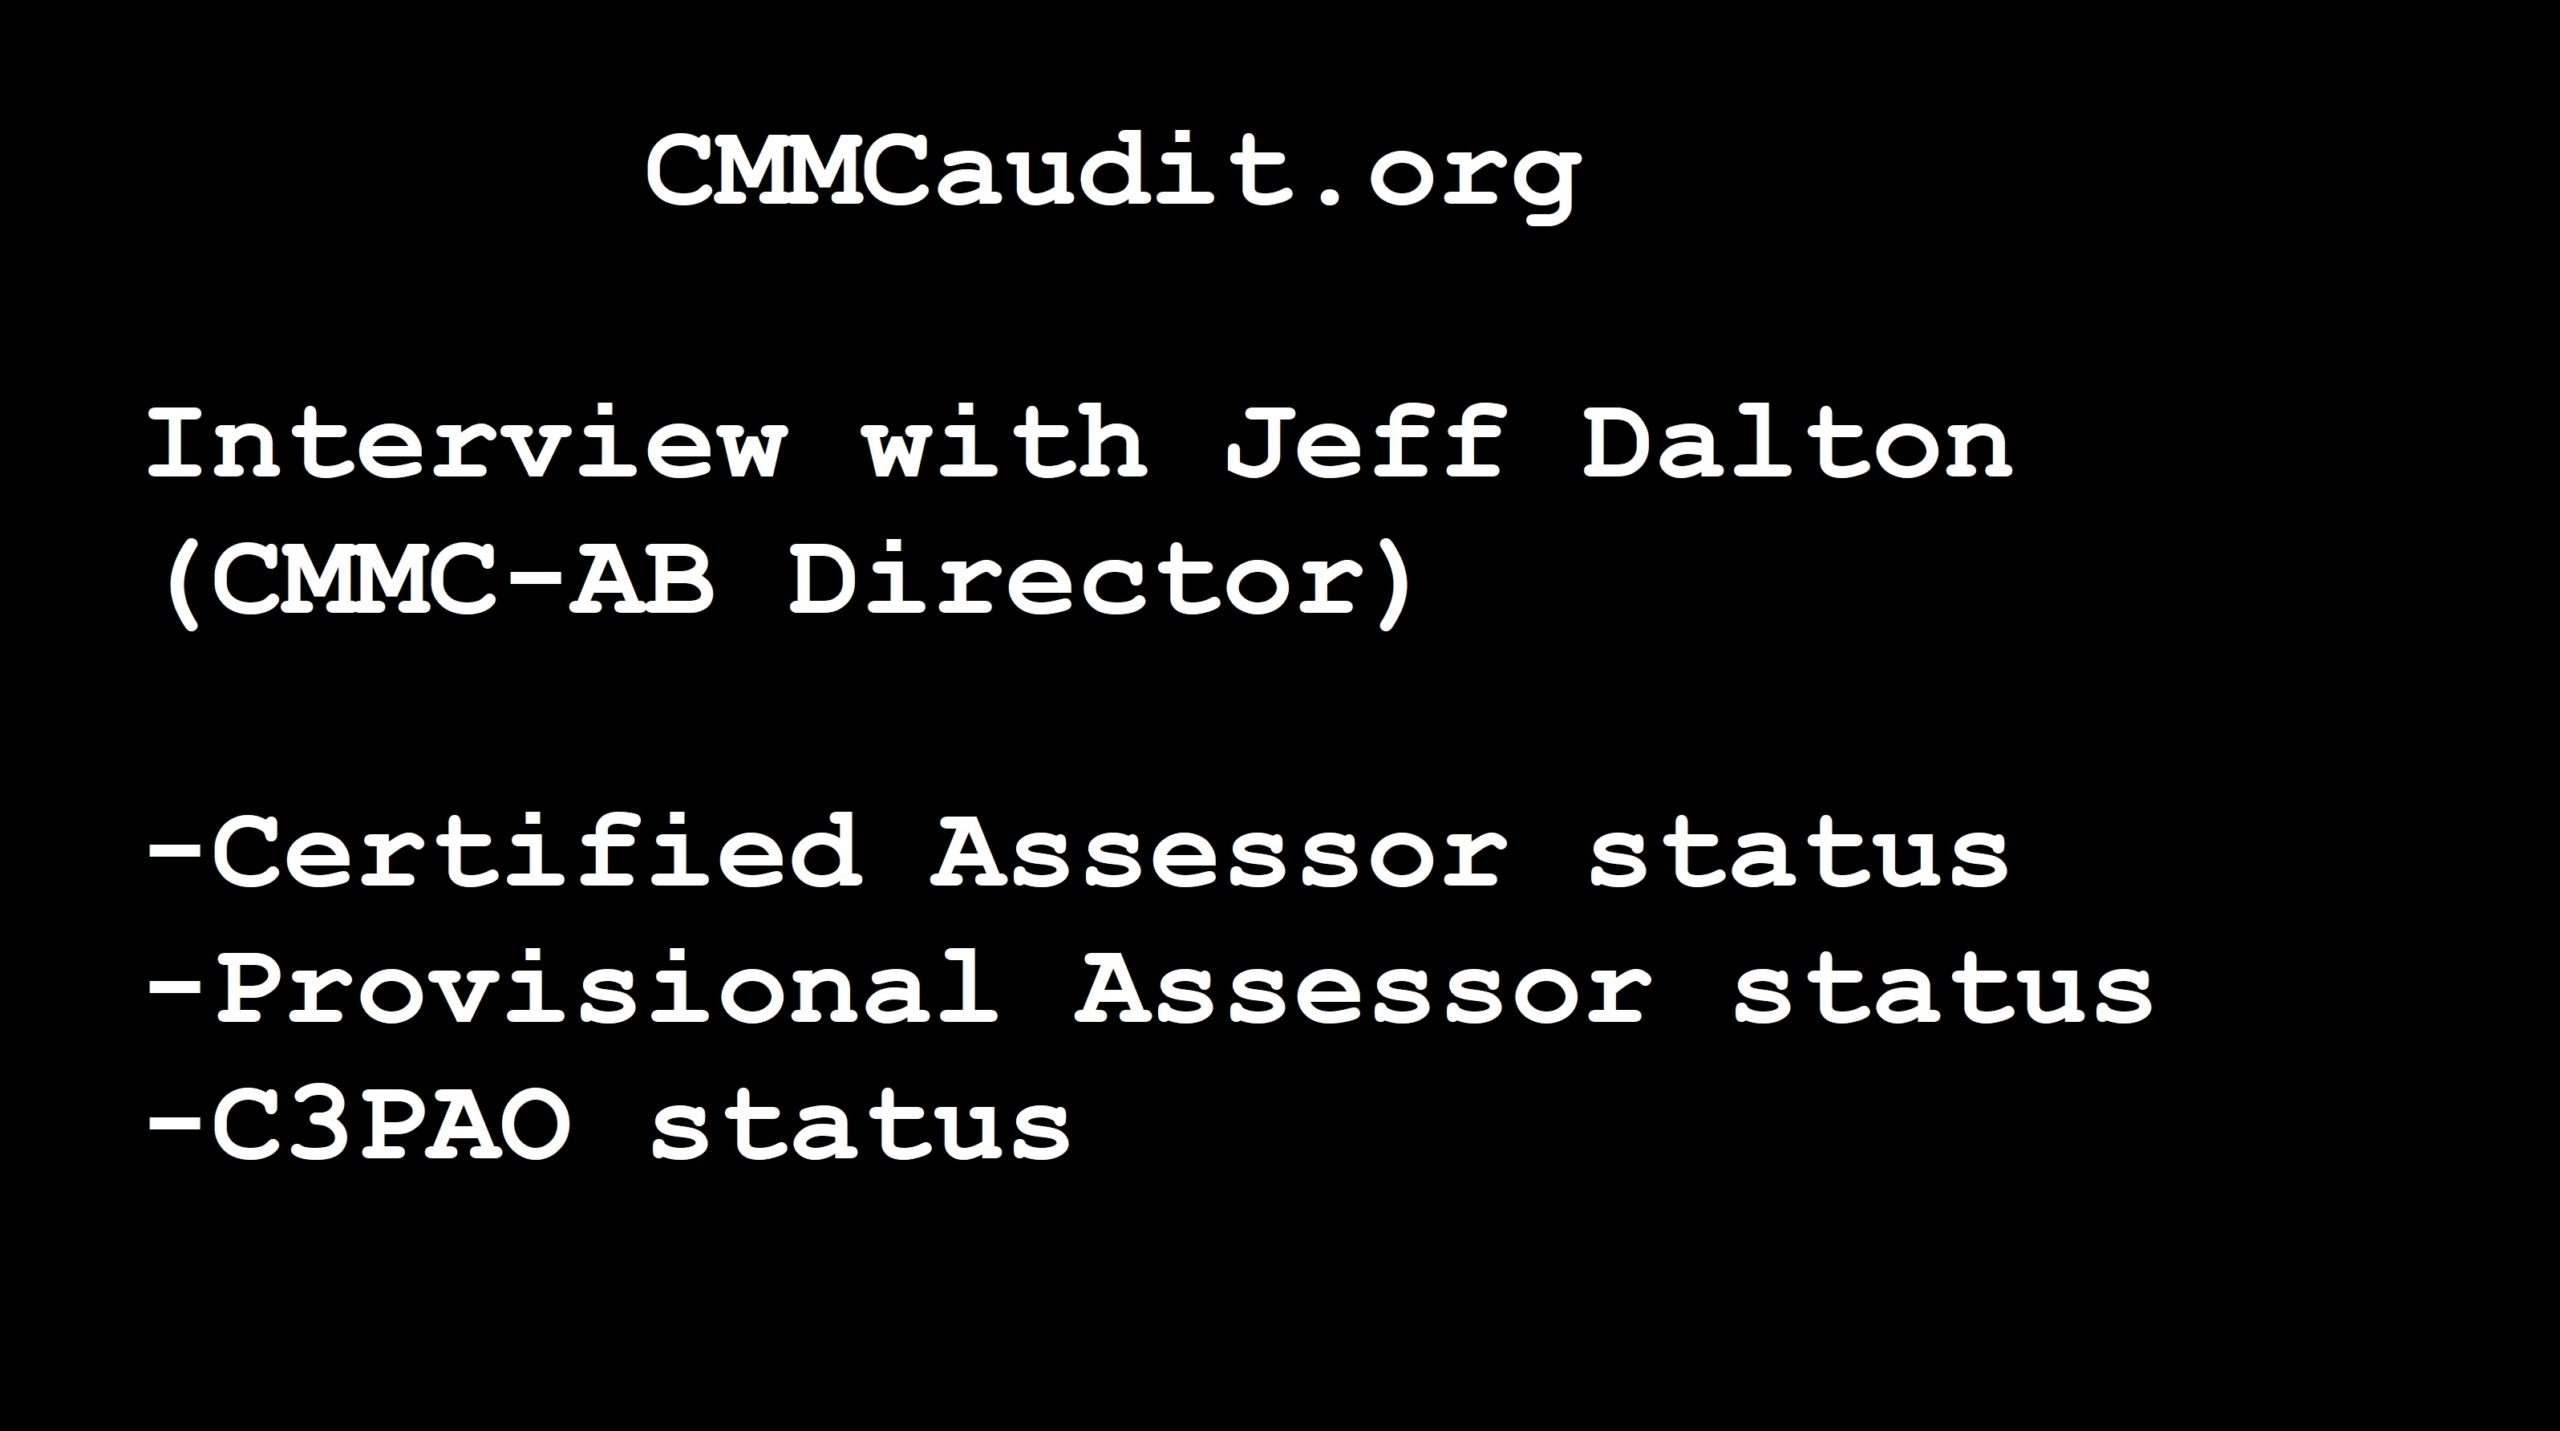 Interview with Jeff Dalton about Certified Assessor status, Provisional Assessor Status, C3PAO status